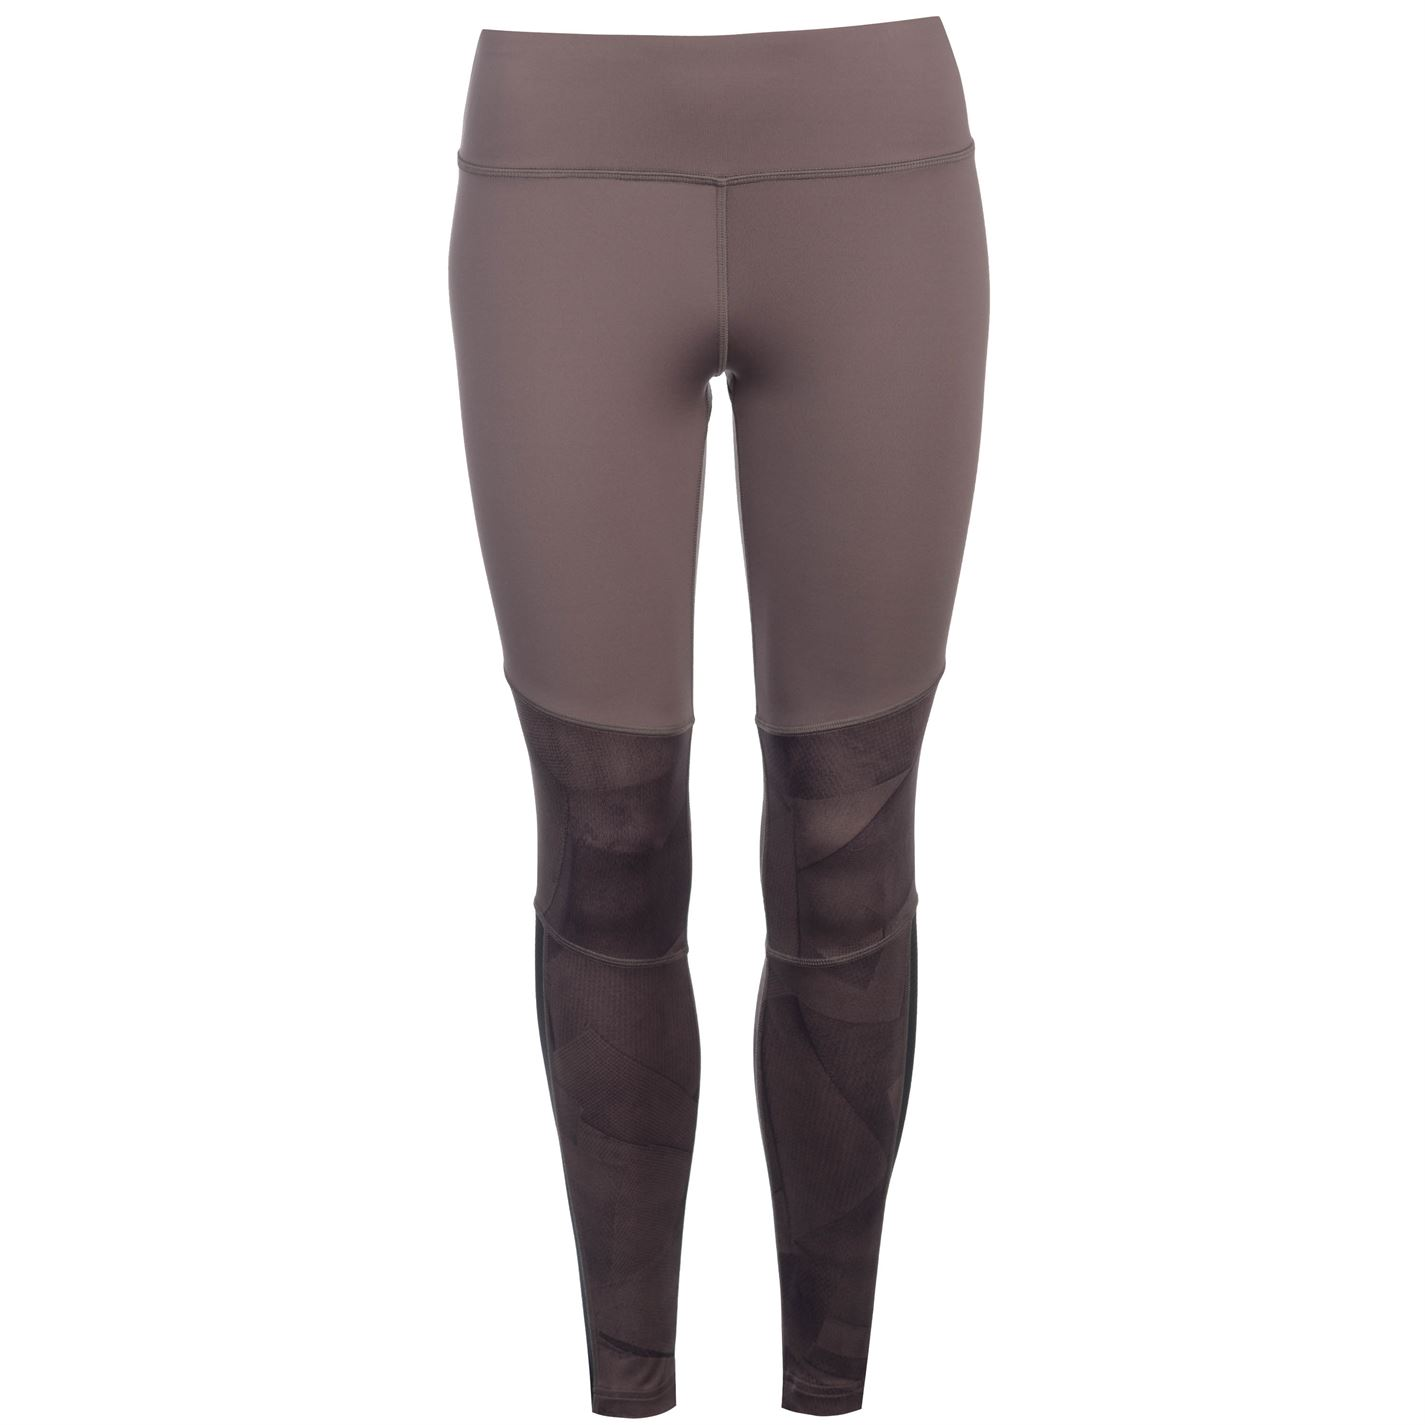 da24a1501ad Legíny Reebok Colour Block Tight Leggings Ladies. Legíny Reebok Colour  Block Tight Leggings Ladies. Legíny Reebok Colour Block ...